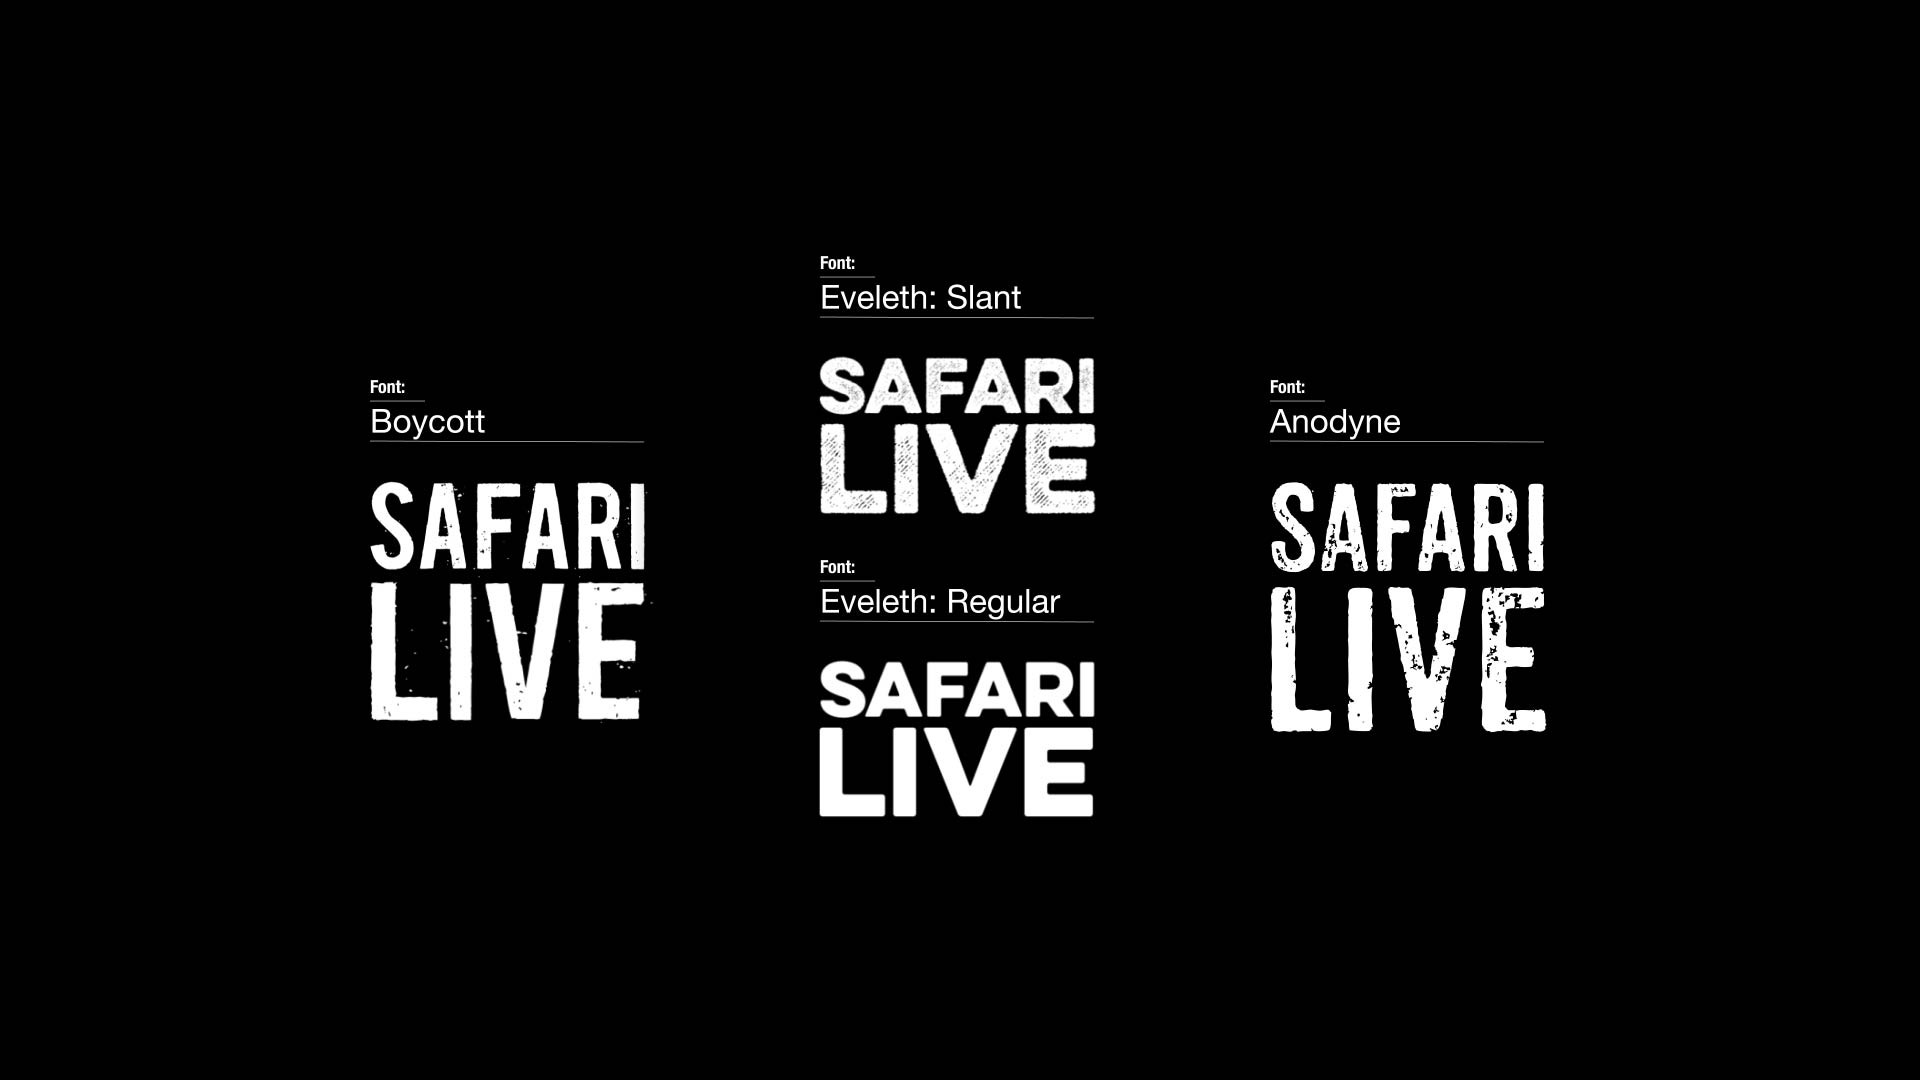 NAT_GEO_SAFARI_LIVE_INITIAL_CONCEPTS_16TH_OCT_17-4